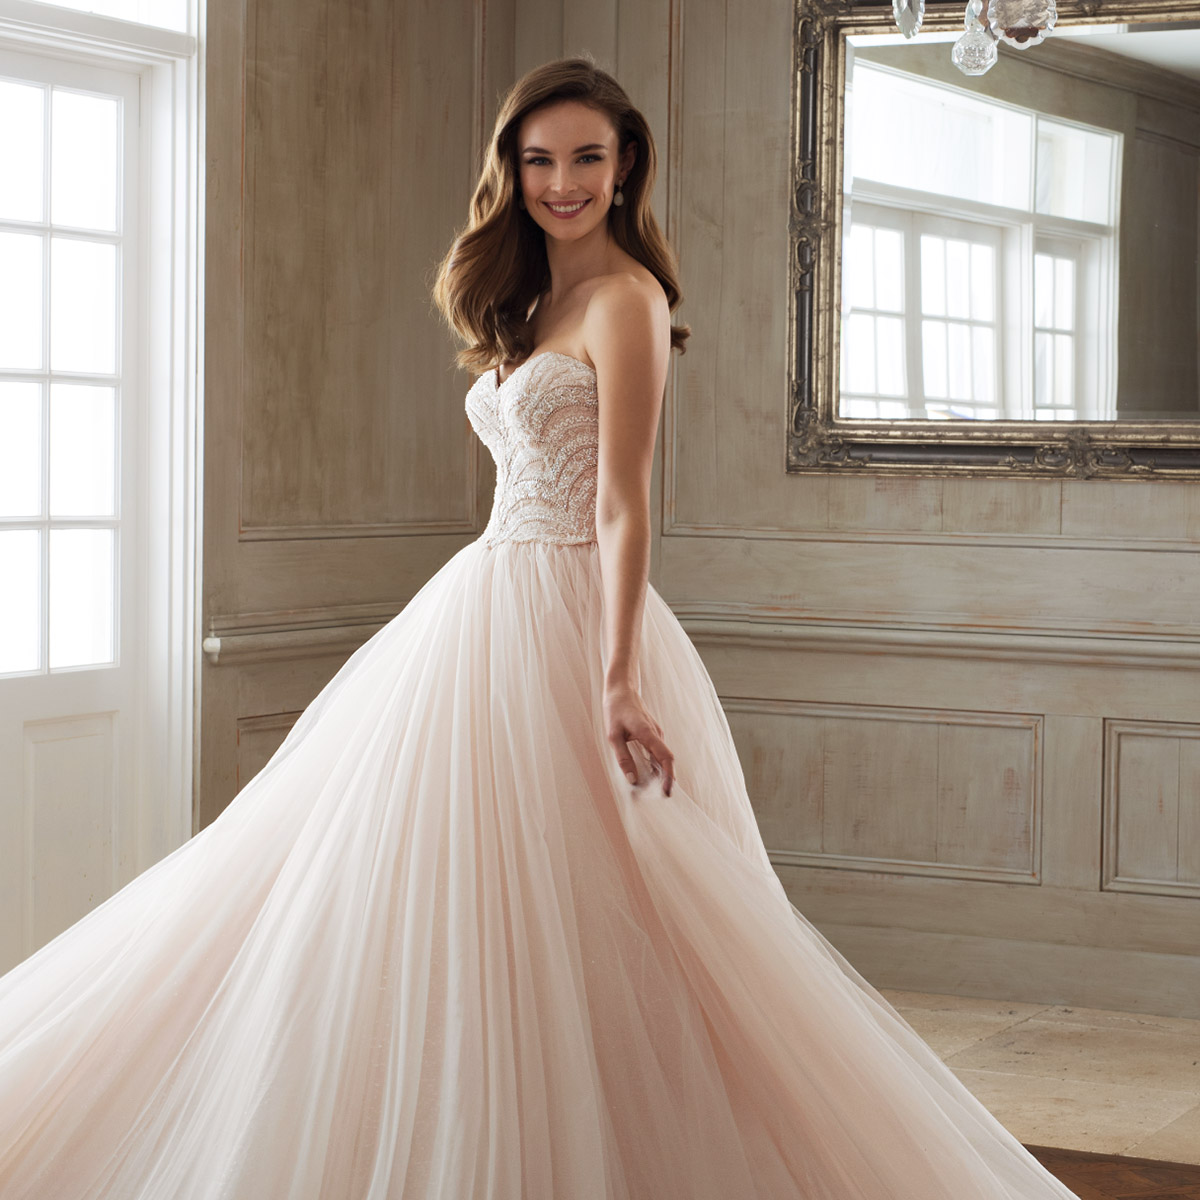 Wedding Dresses Ball Gowns: 100 Wedding Dresses You Loved In 2018: Ball Gowns & A